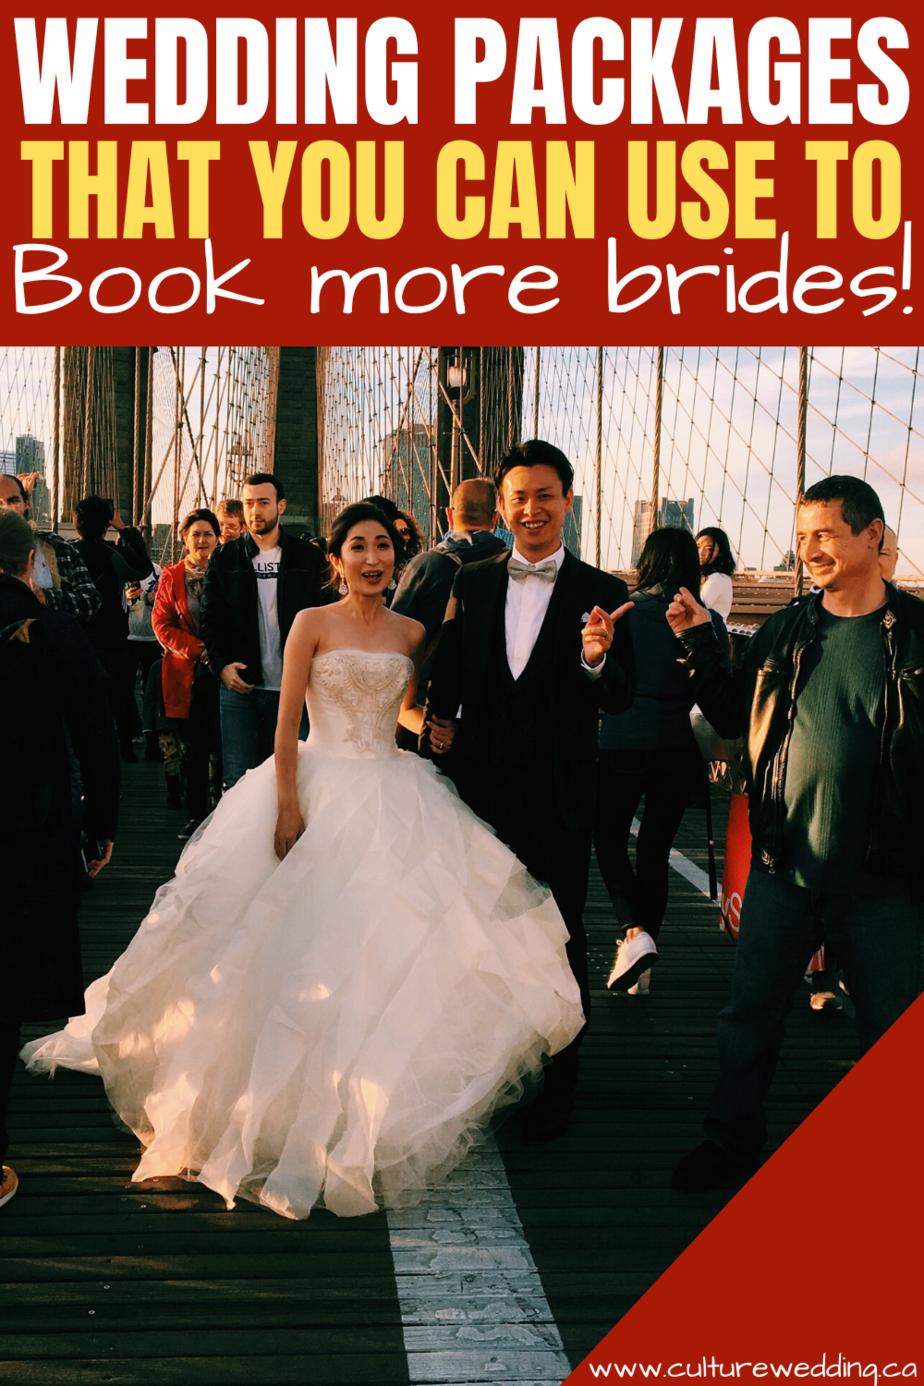 Selling wedding packages that you can use to book more weddings. We encourage wedding planners to looking into ways to increase wedding business!